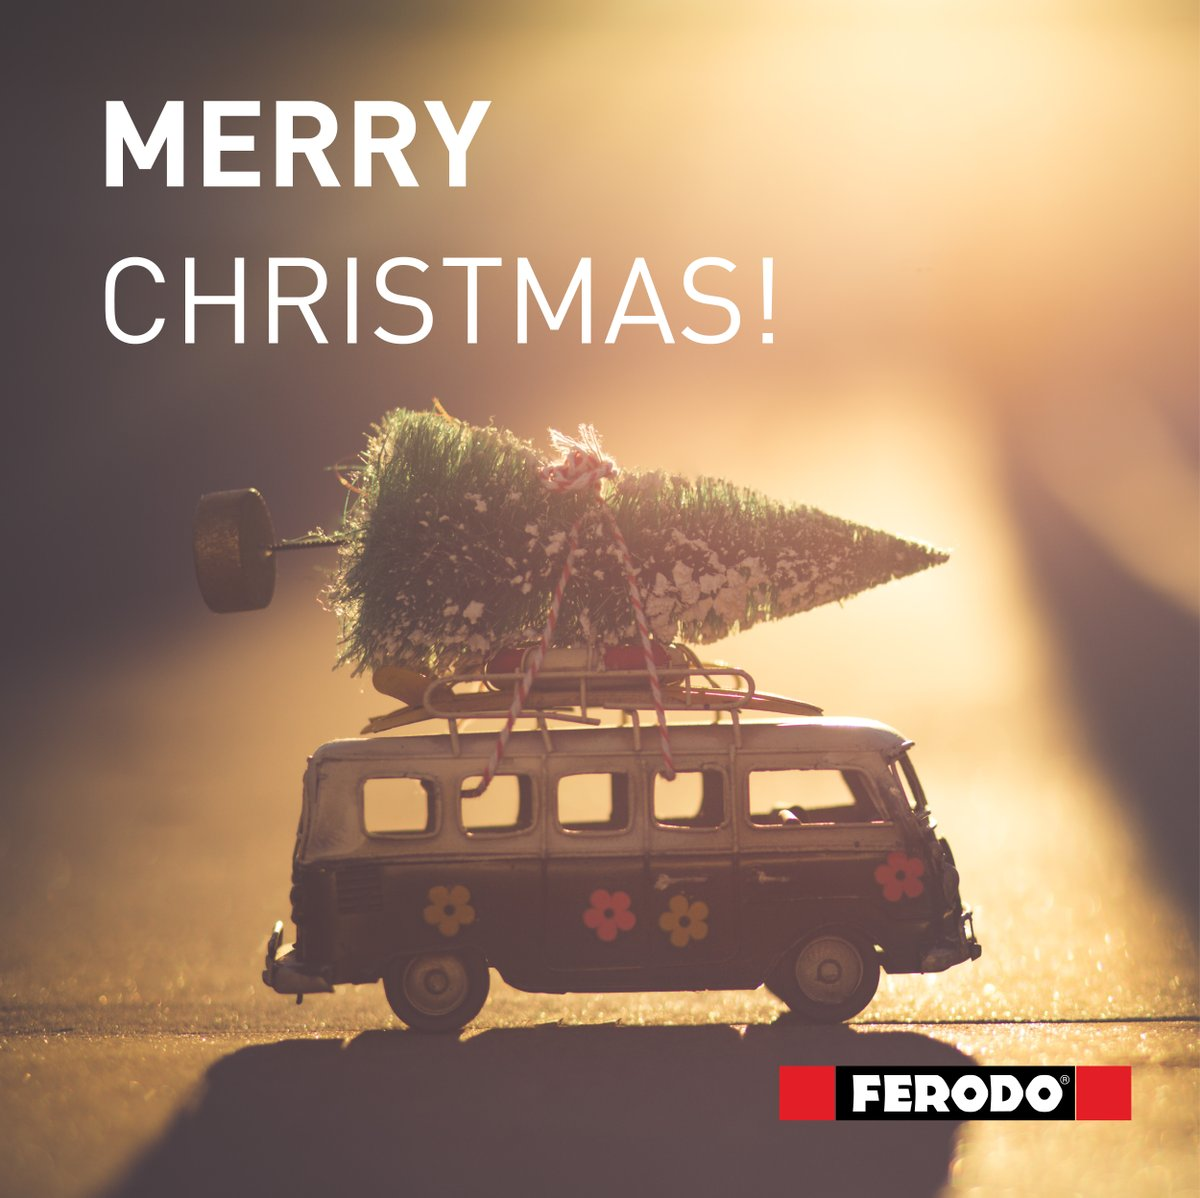 Ferodo wishes everyone a Merry Christmas. Don't stop the festivities! https://t.co/lUFY4wmqpH